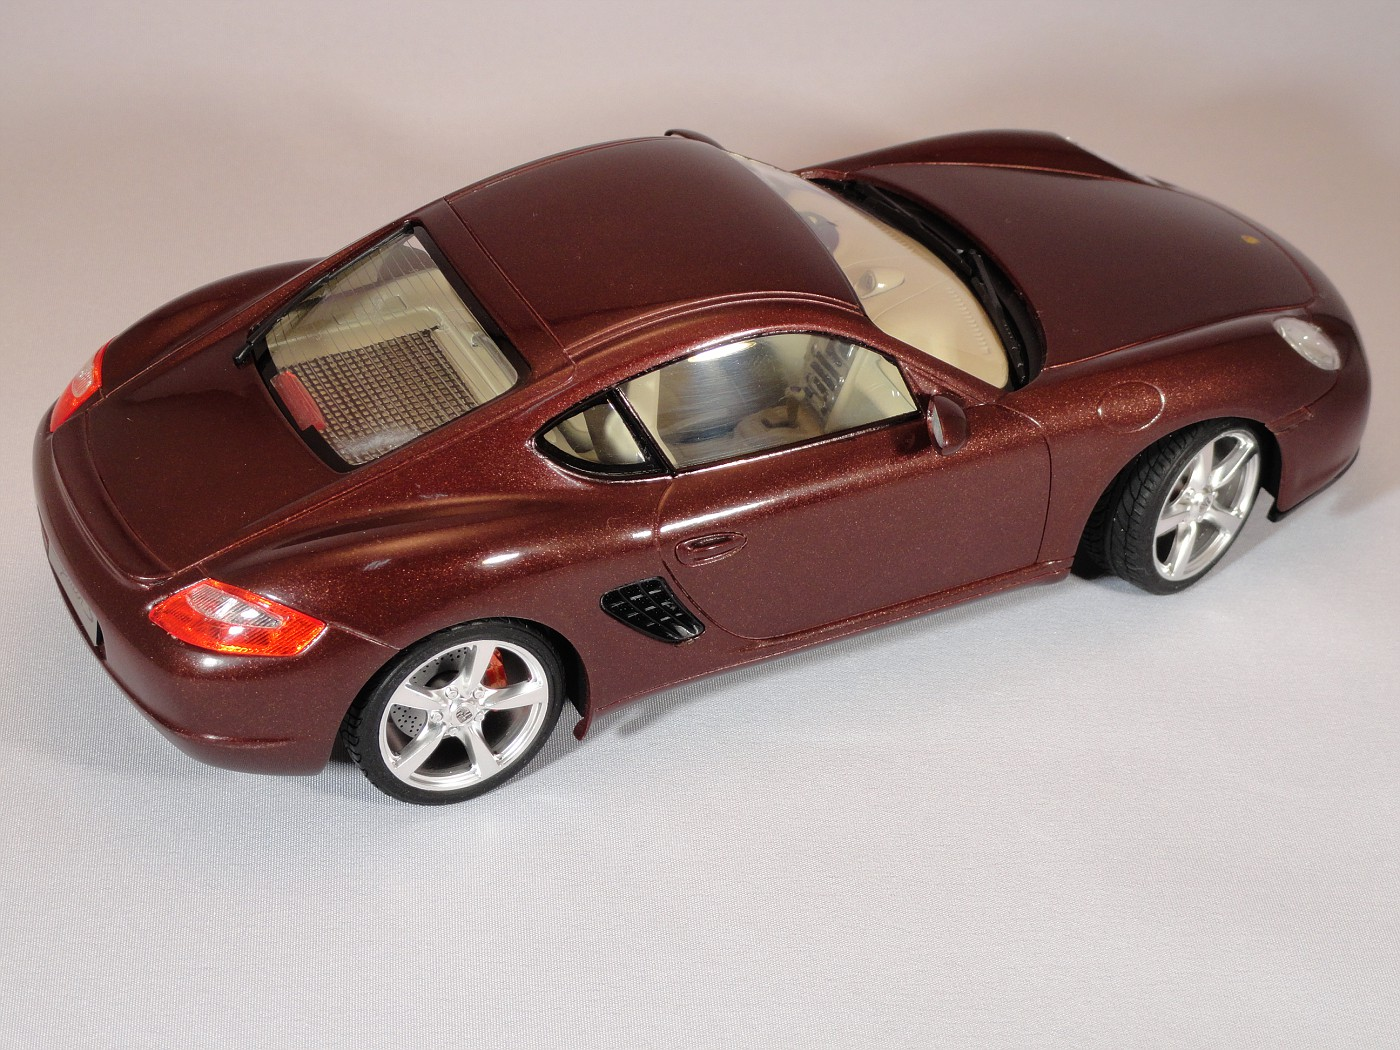 Fujimi Porsche Cayman S Under Glass Model Cars